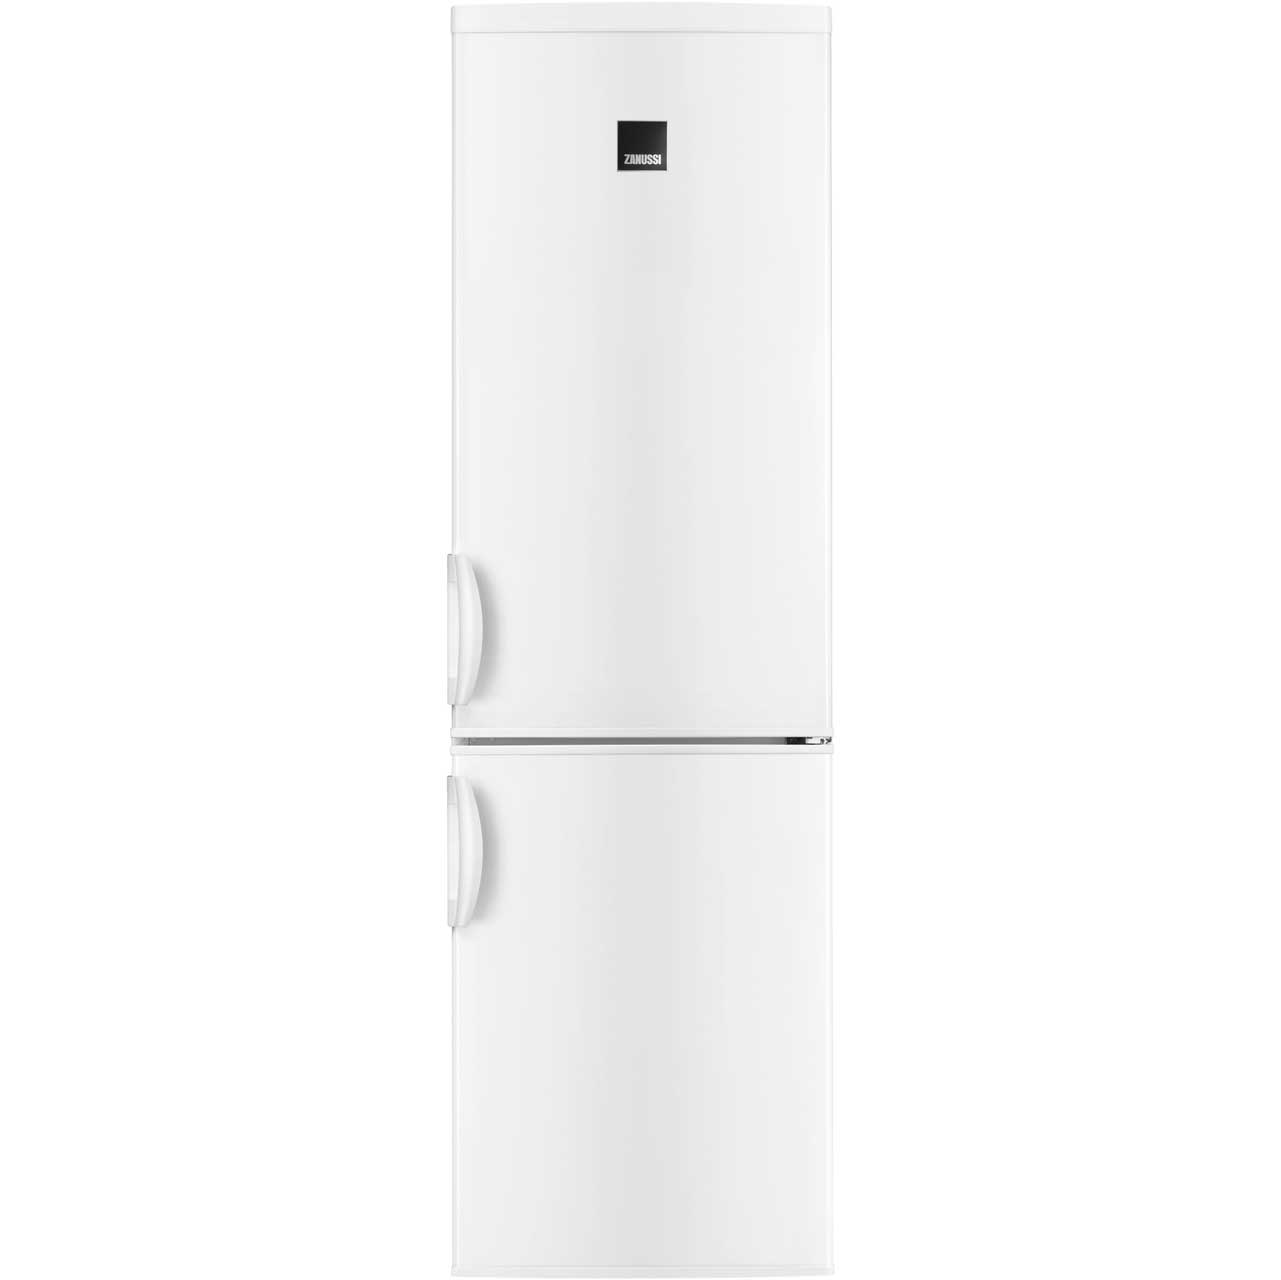 Zanussi ZRB38224WA Free Standing Fridge Freezer Frost Free in White